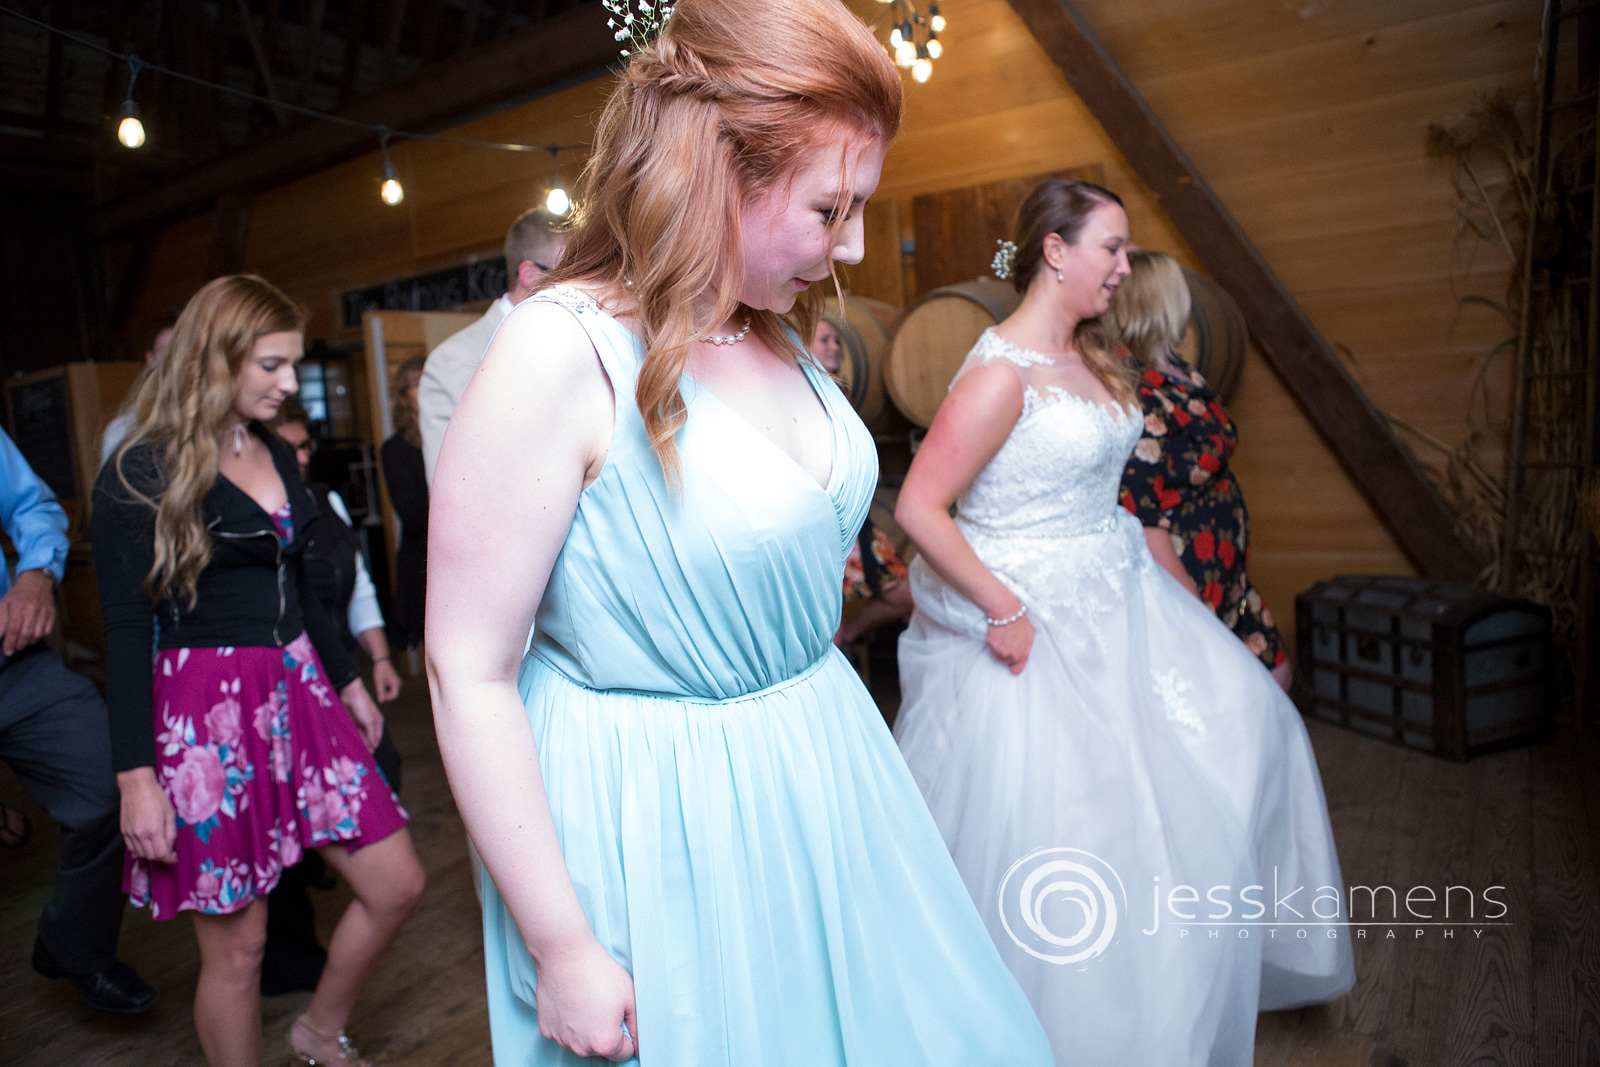 bride and maid of honor dance at the wedding